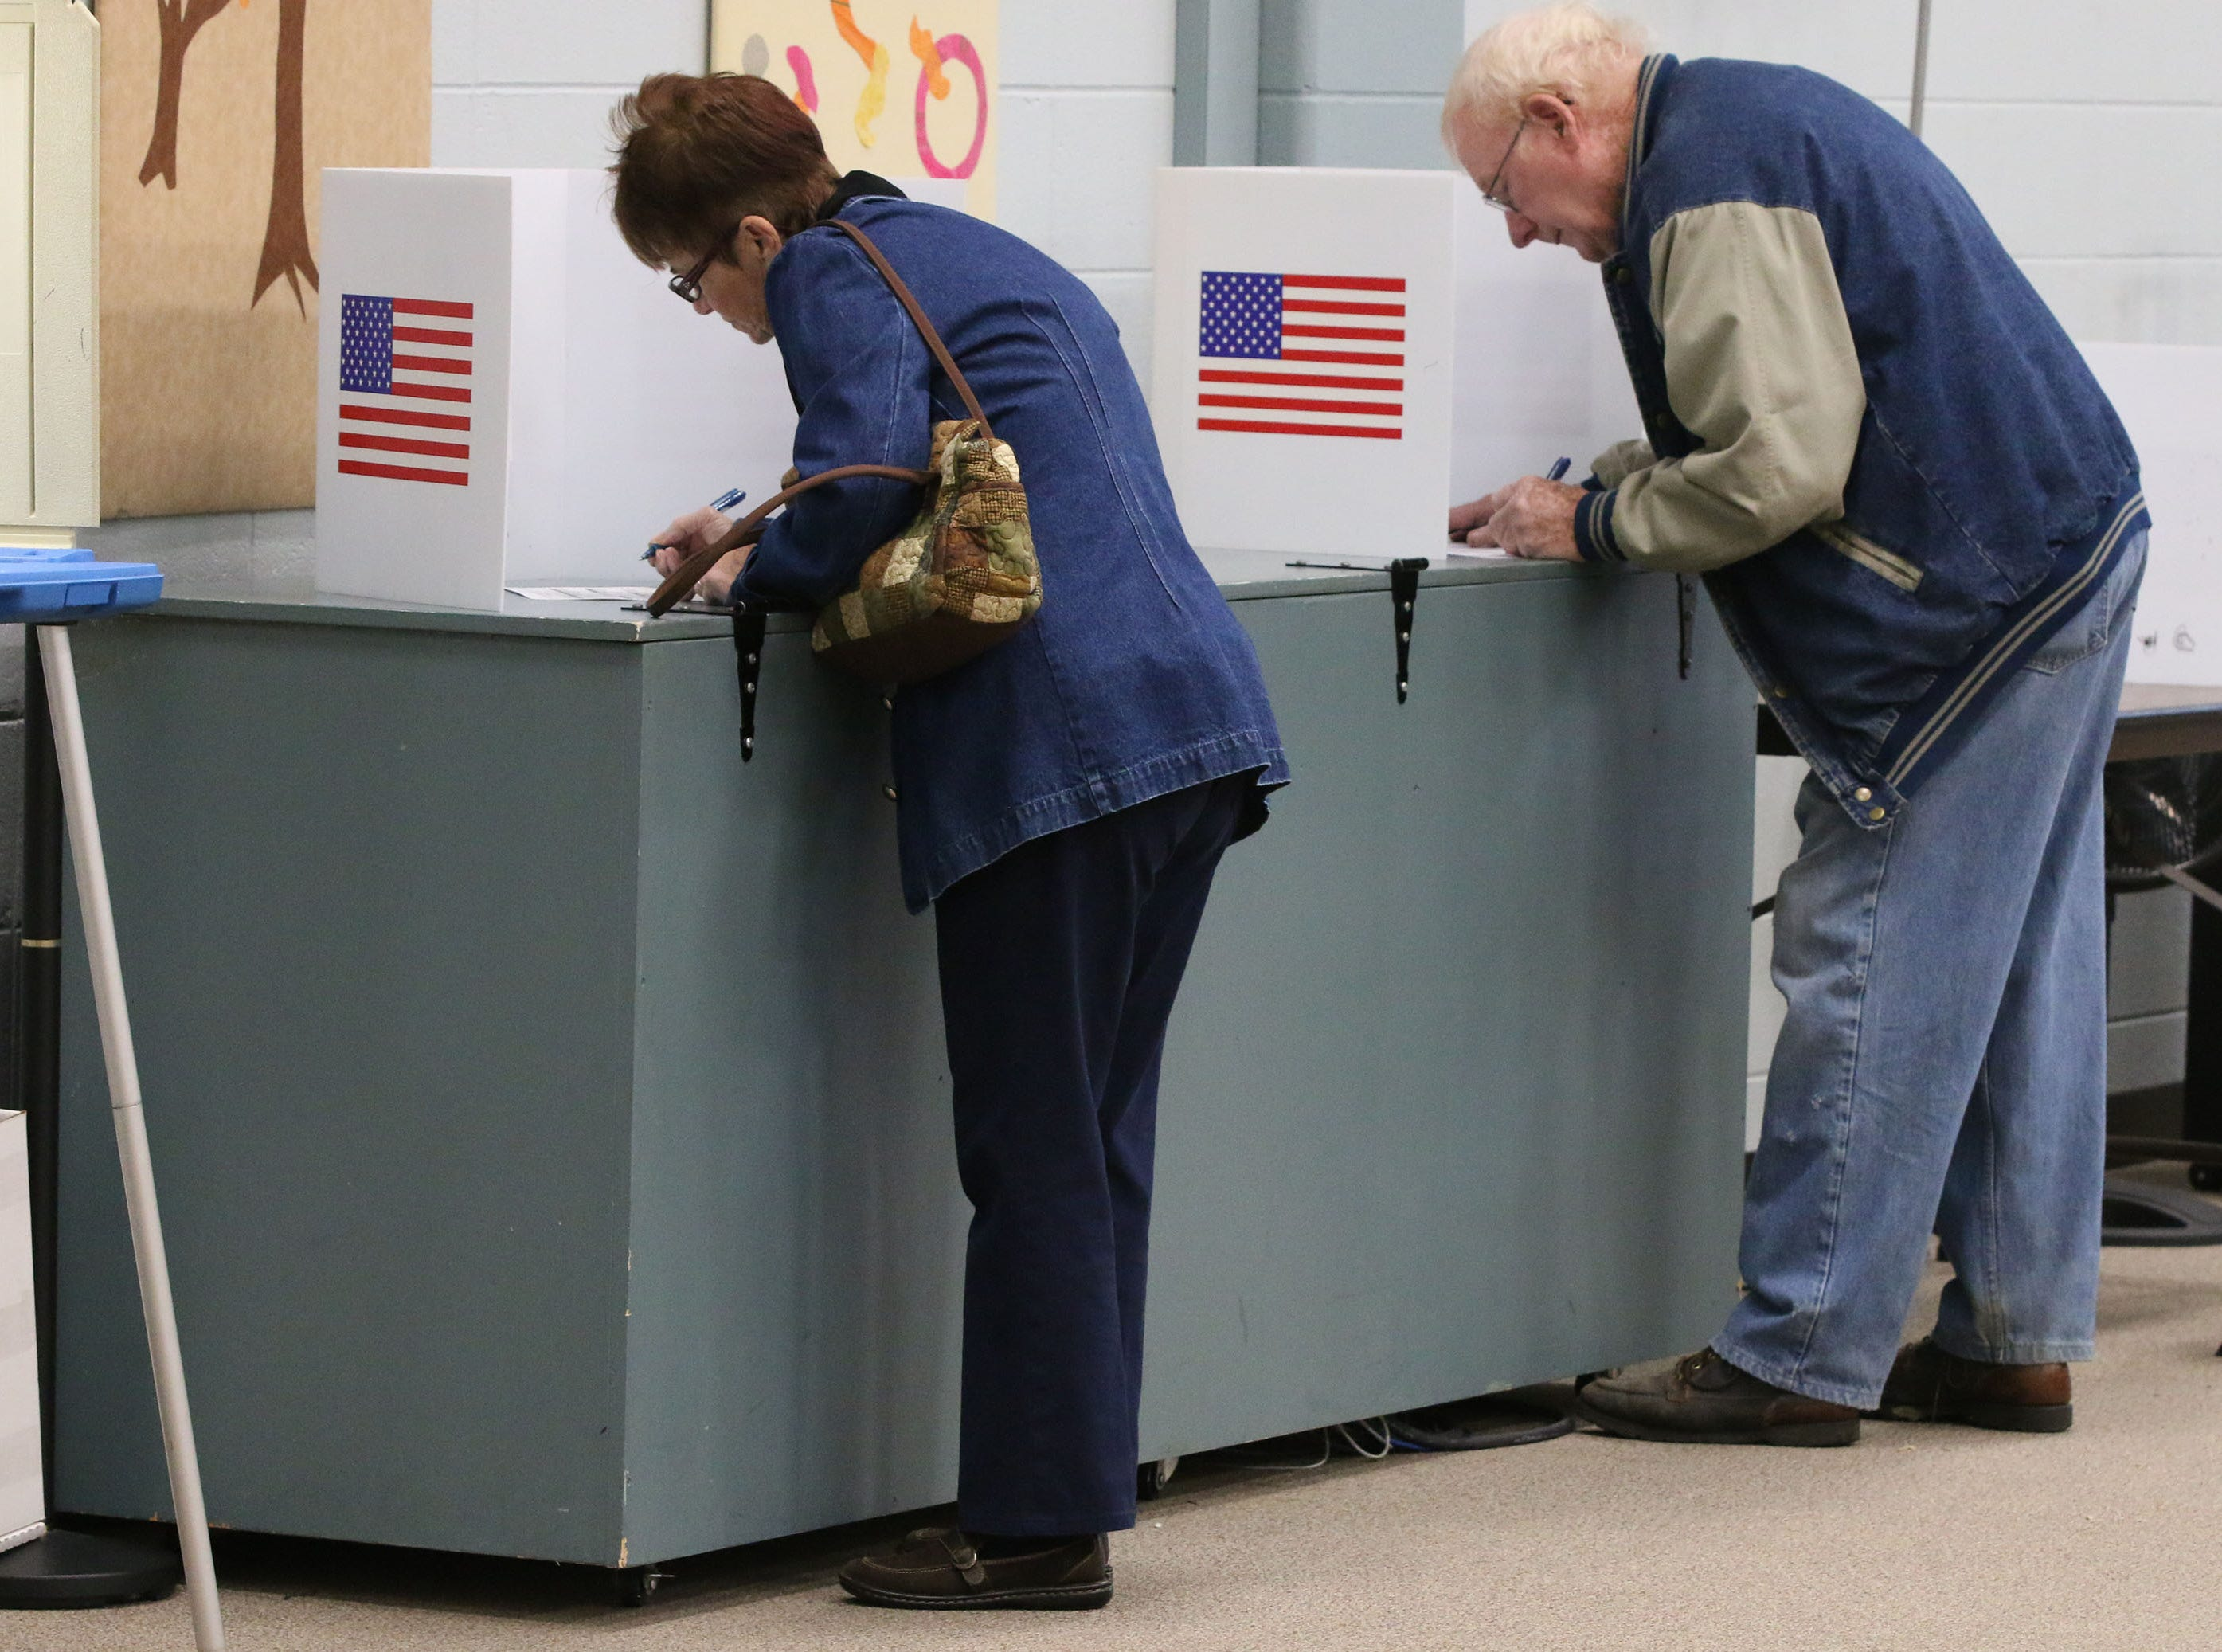 People work on filing out their ballots for the midterm election at Bethany Reformed Church, Tuesday, November 6, 2018, in Sheboygan, Wis.